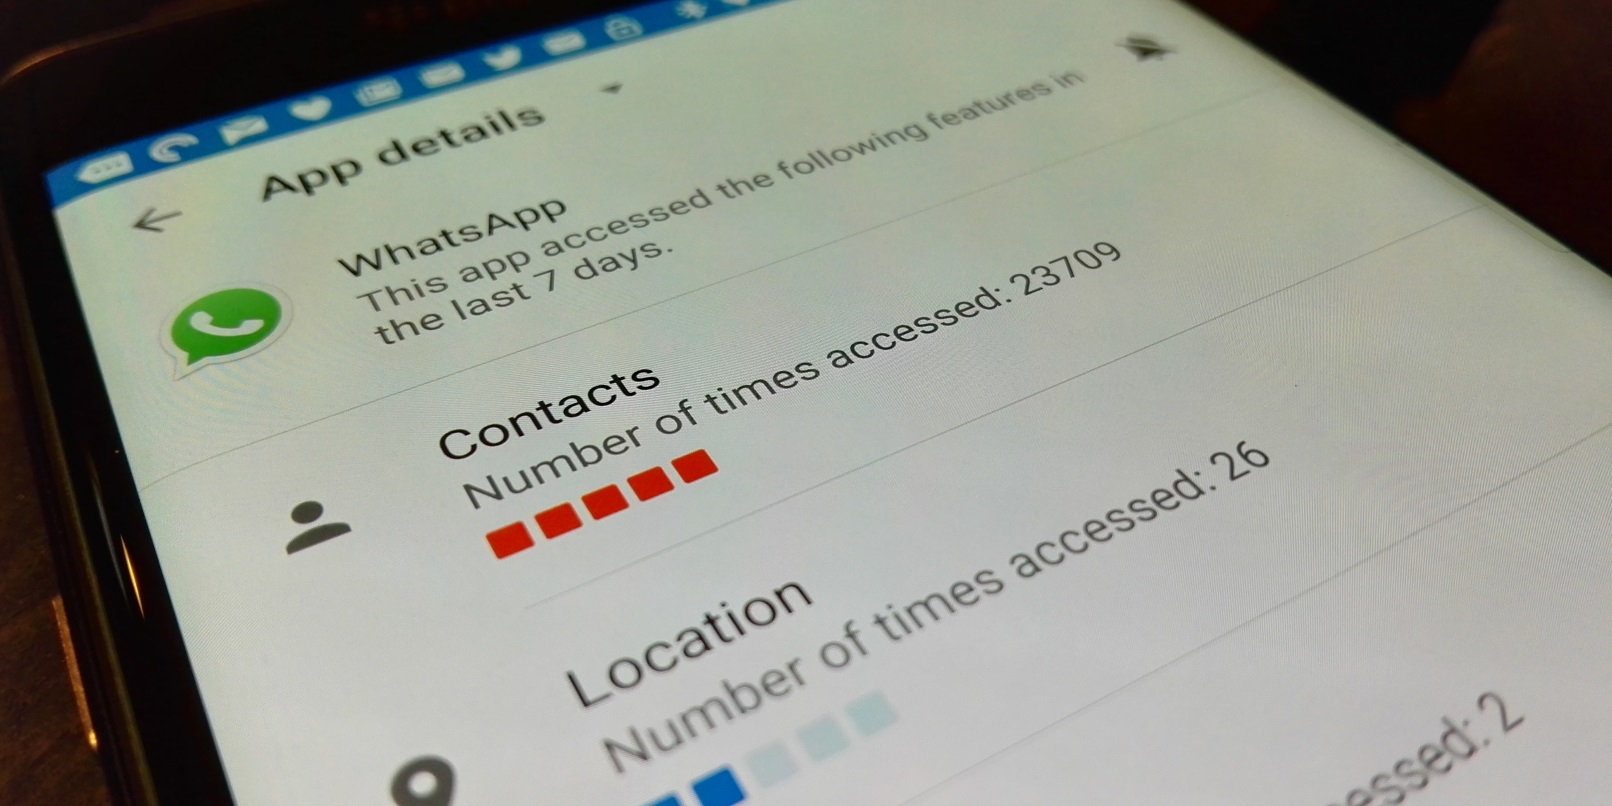 Why has WhatsApp accessed my contacts 23,709 times in the last 7 days?